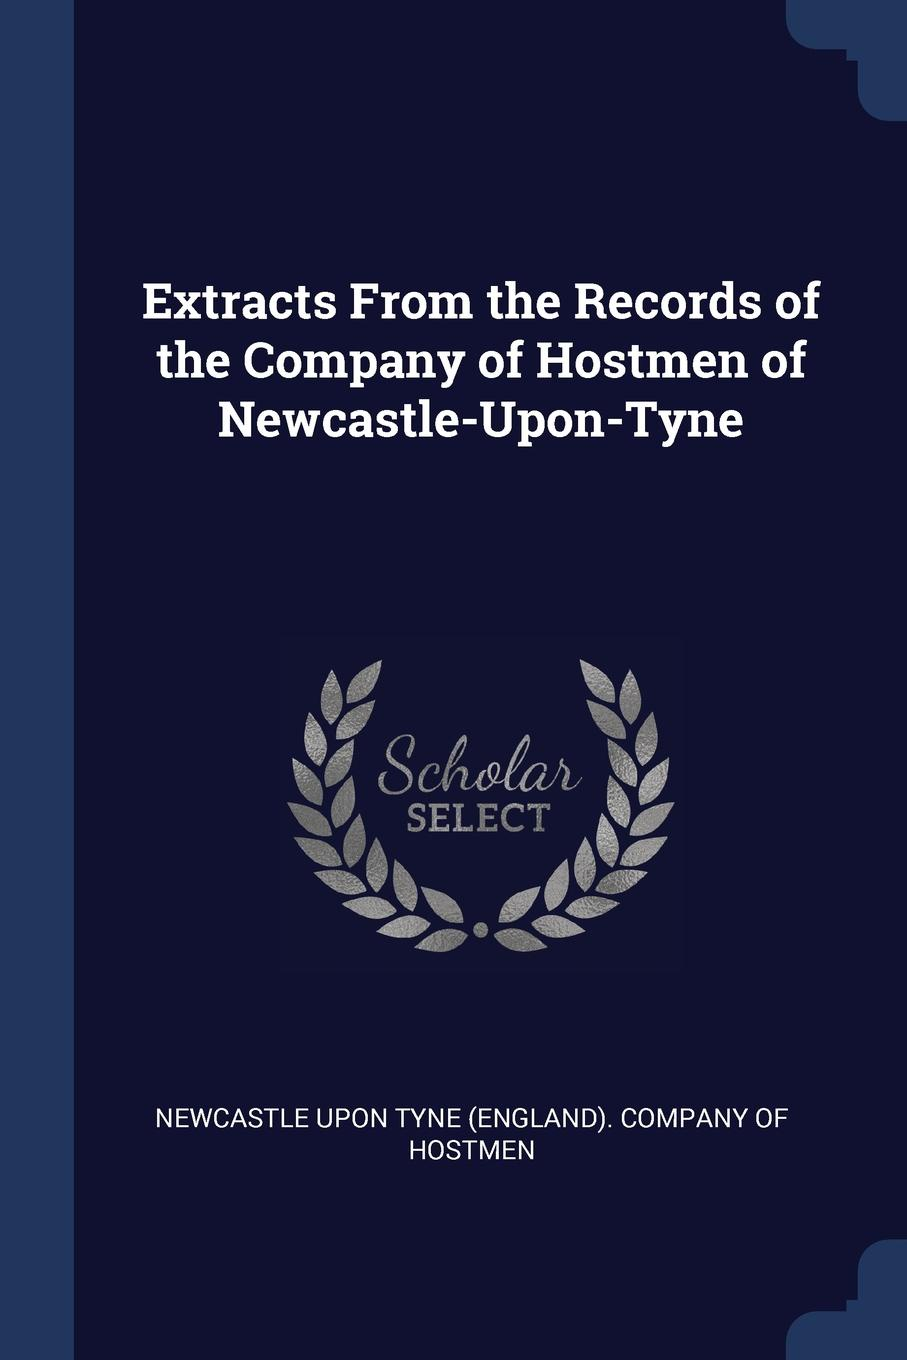 Extracts From the Records of Company Hostmen Newcastle-Upon-Tyne